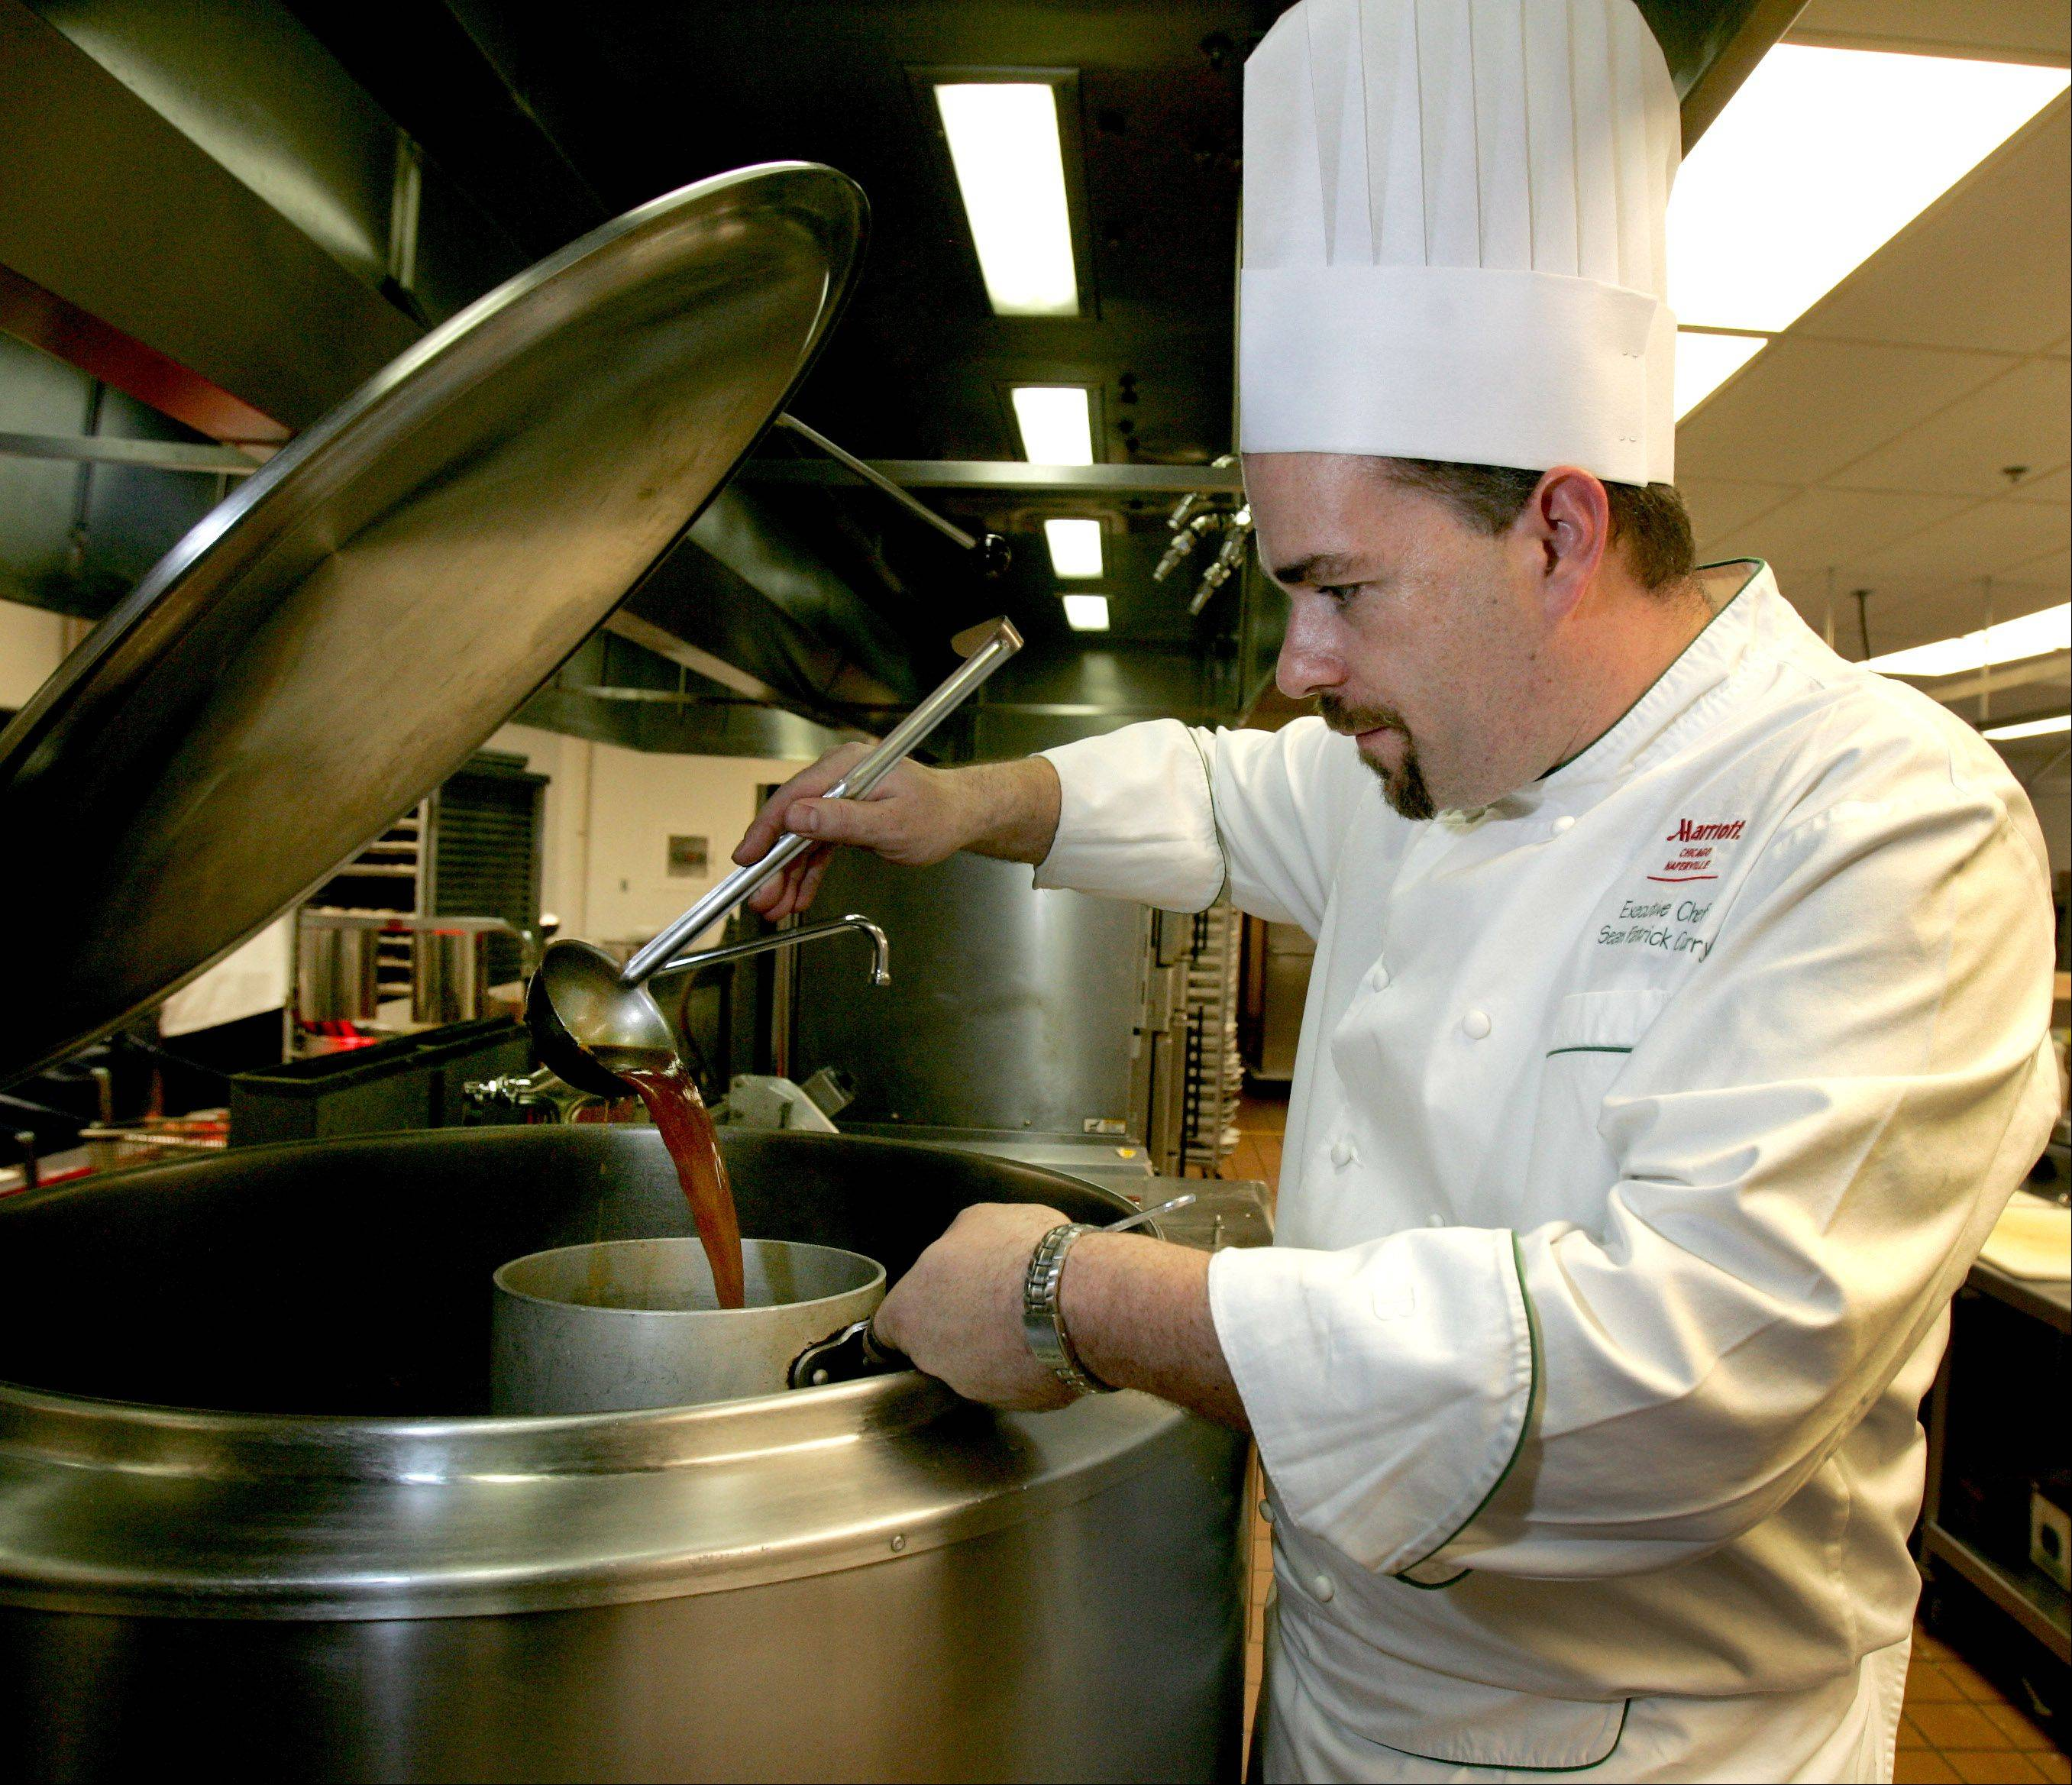 Bev Horne/bhorne@dailyherald.comExecutive chef Sean Patrick Curry at work in the kitchen at Artisan Table restaurant in Naperville.